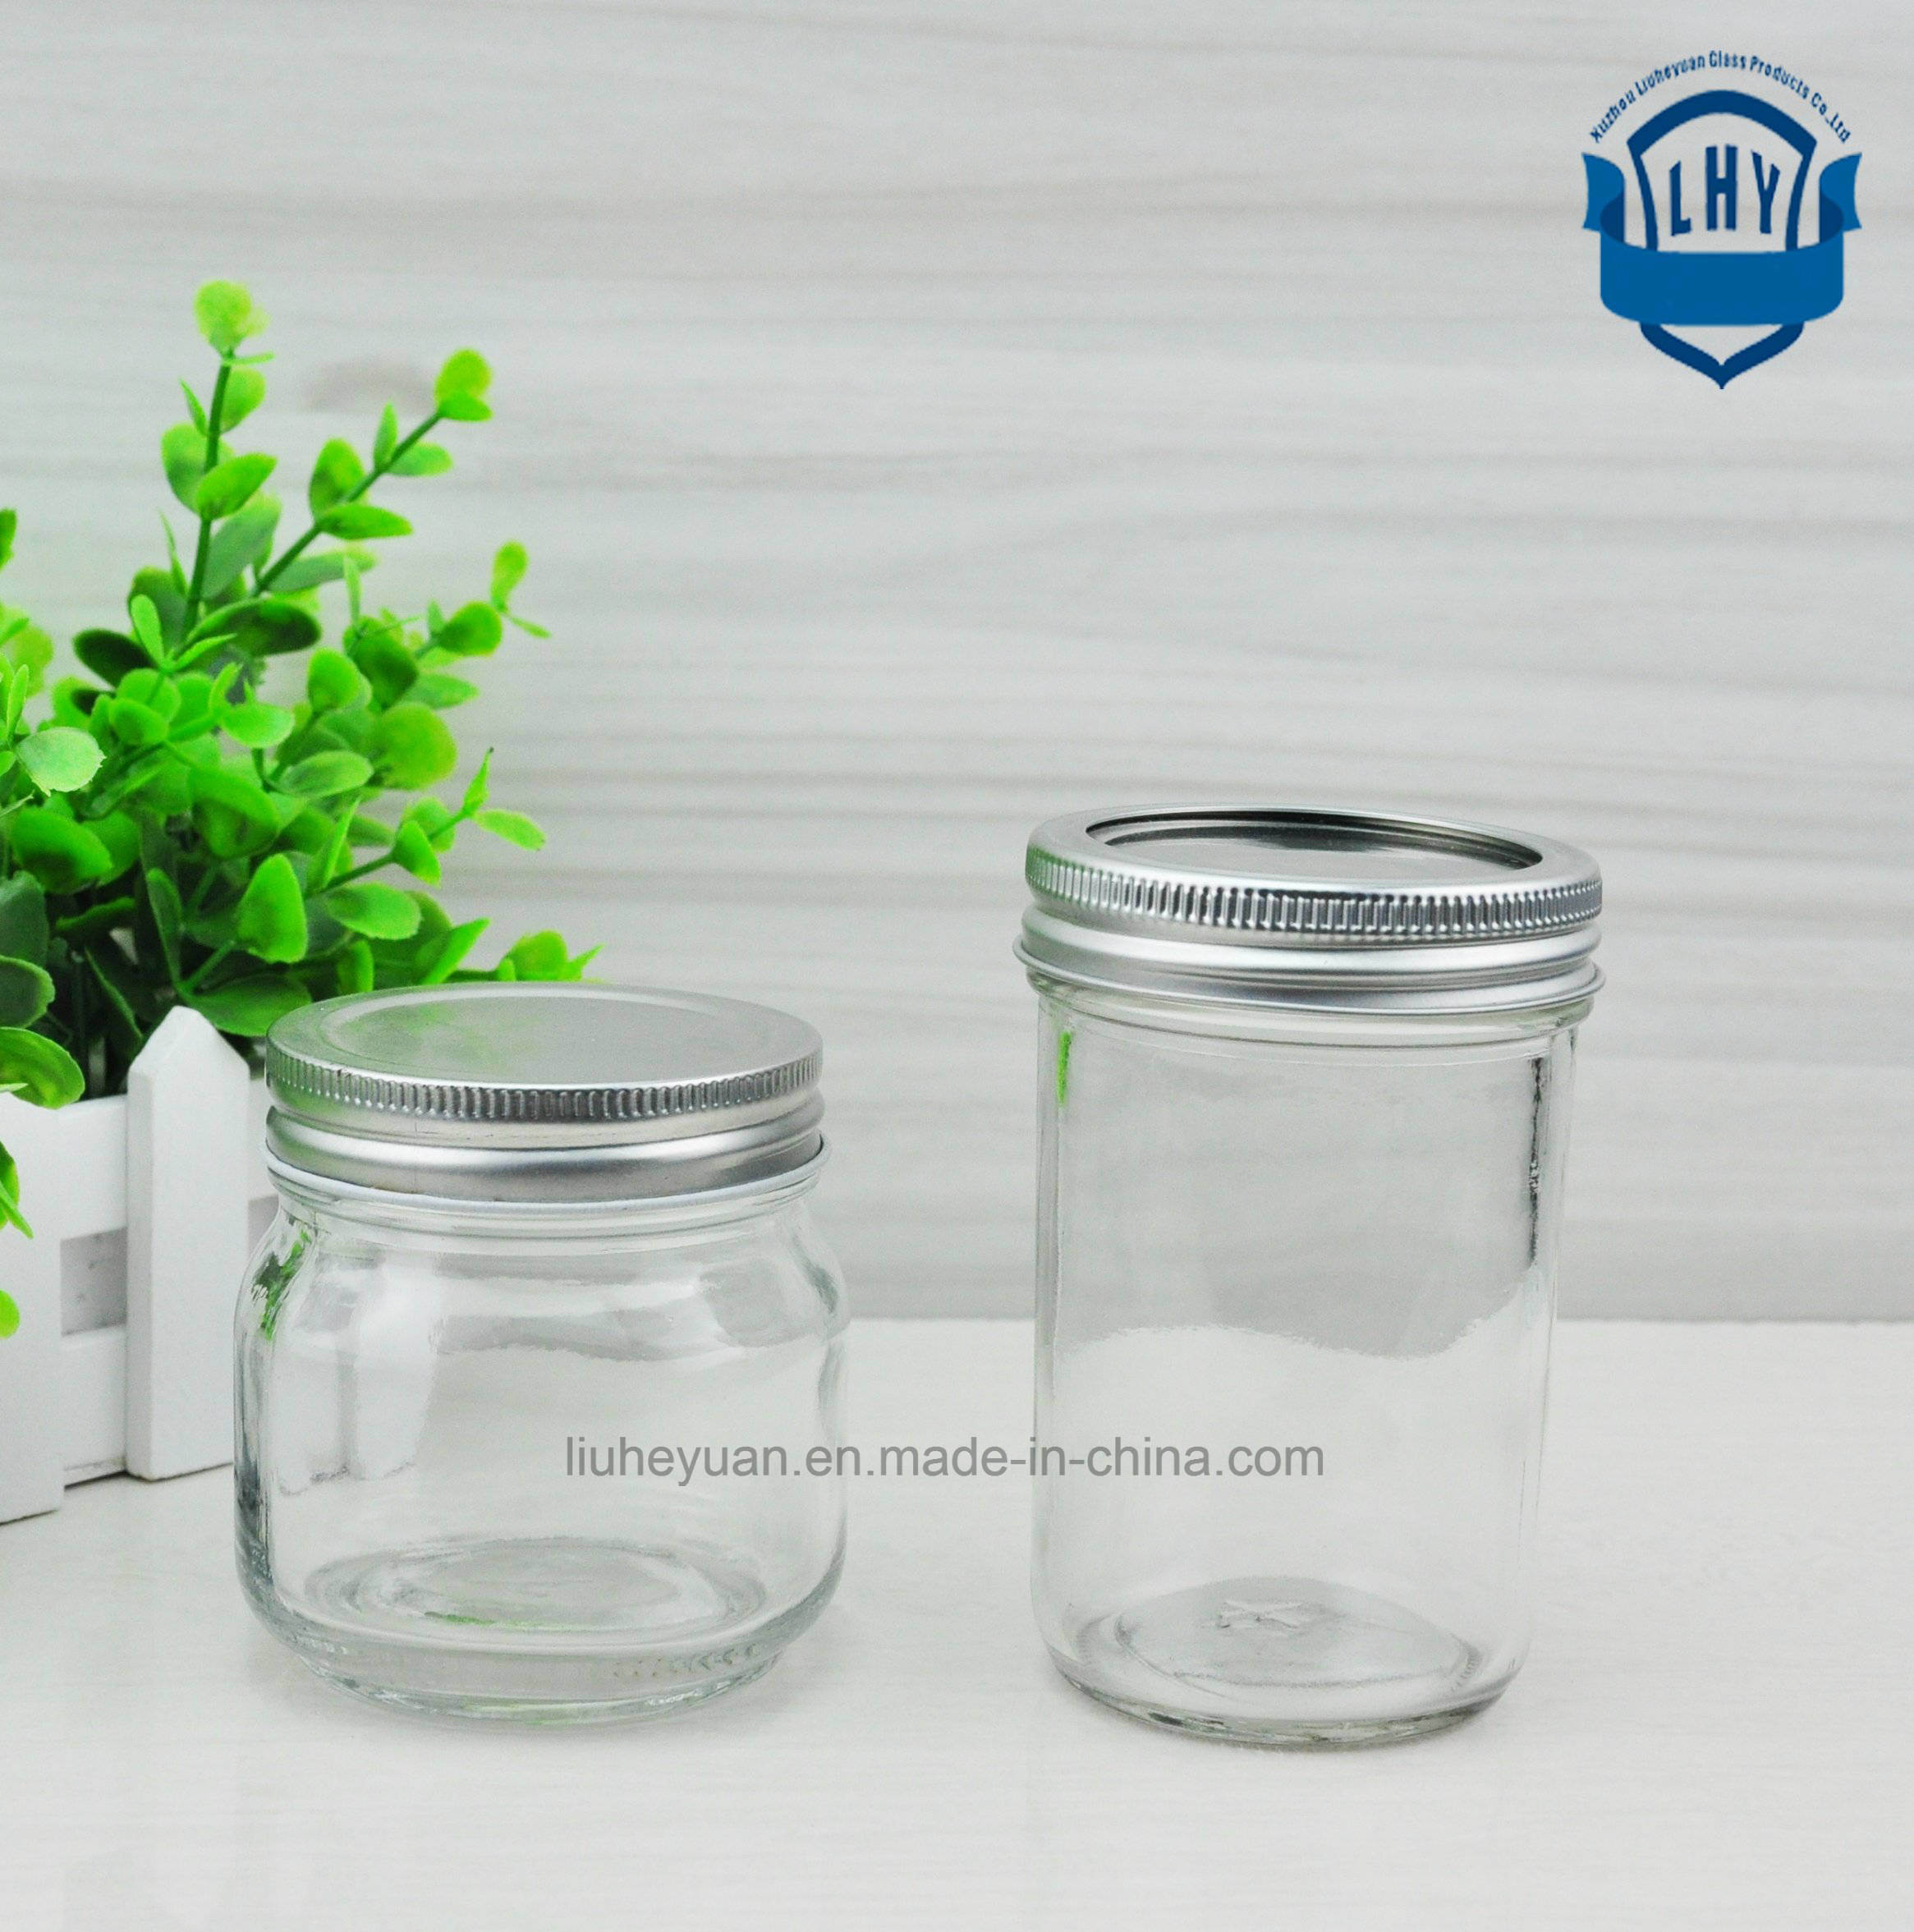 190 Ml Honey, Bird′s Nest, High-Grade Lead-Free Glass Bottles